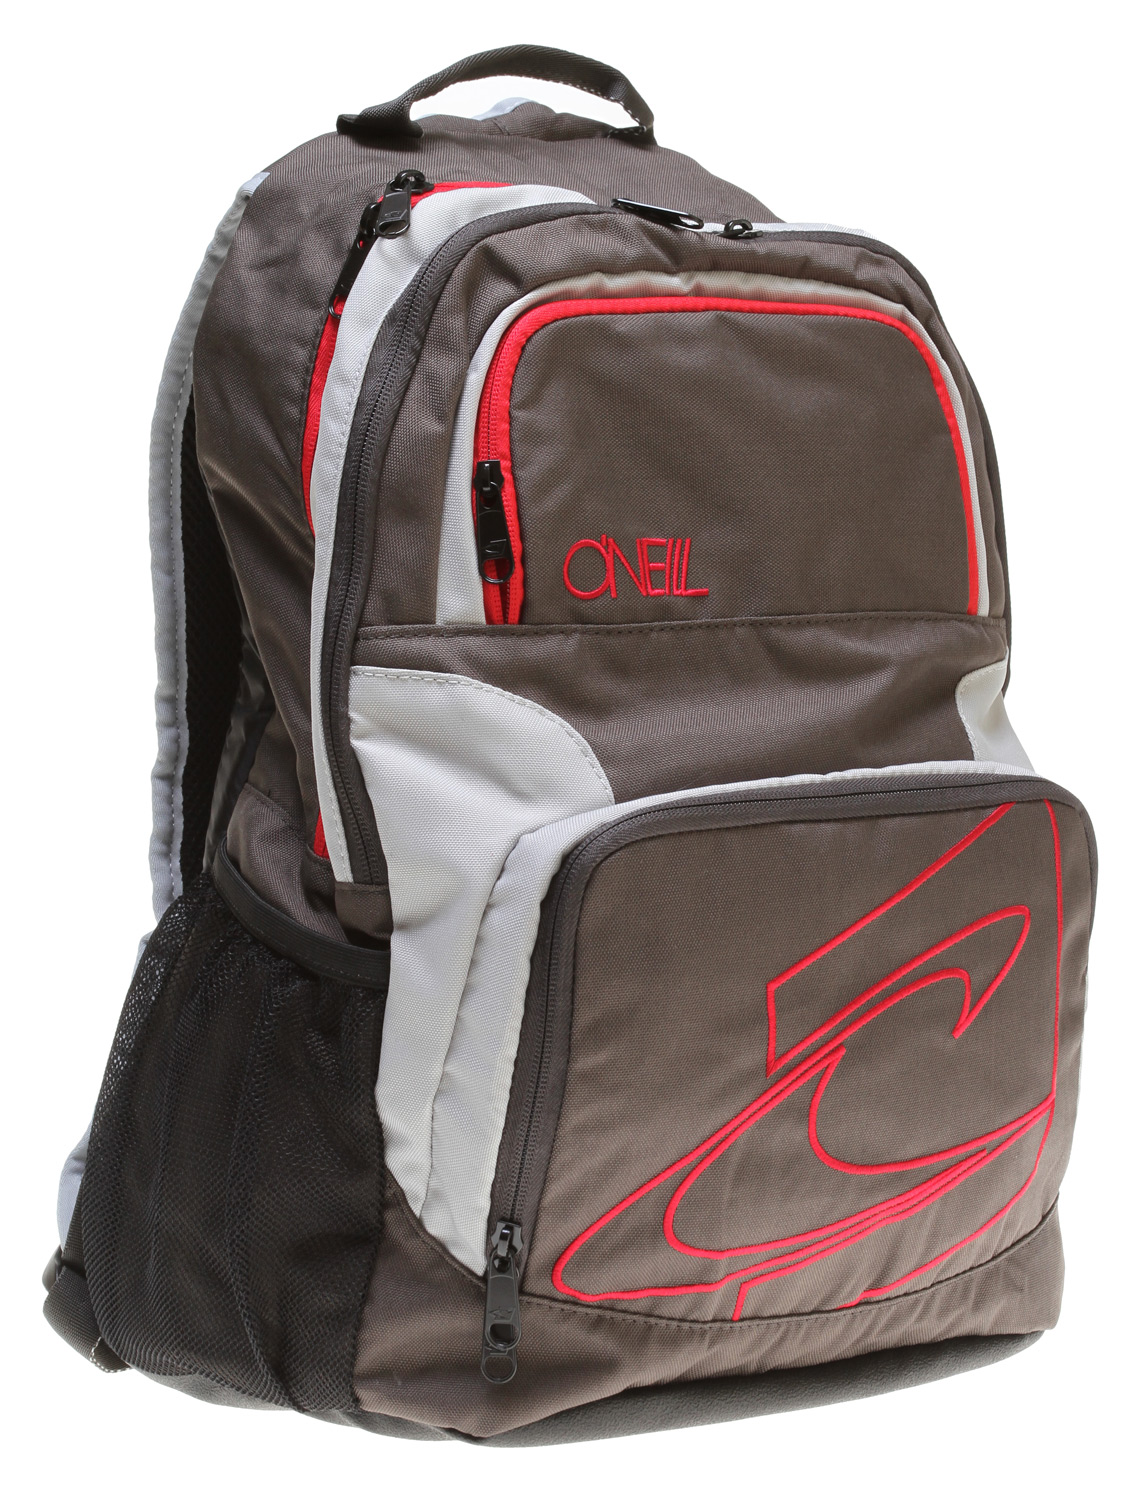 "Surf Key Features of the O'Neill Epic Backpack: Two main compartments Breathable back flow channels Multiple storage pockets 600D polyester with rubber bottom 18"" x 13"" x 7"" - $31.95"